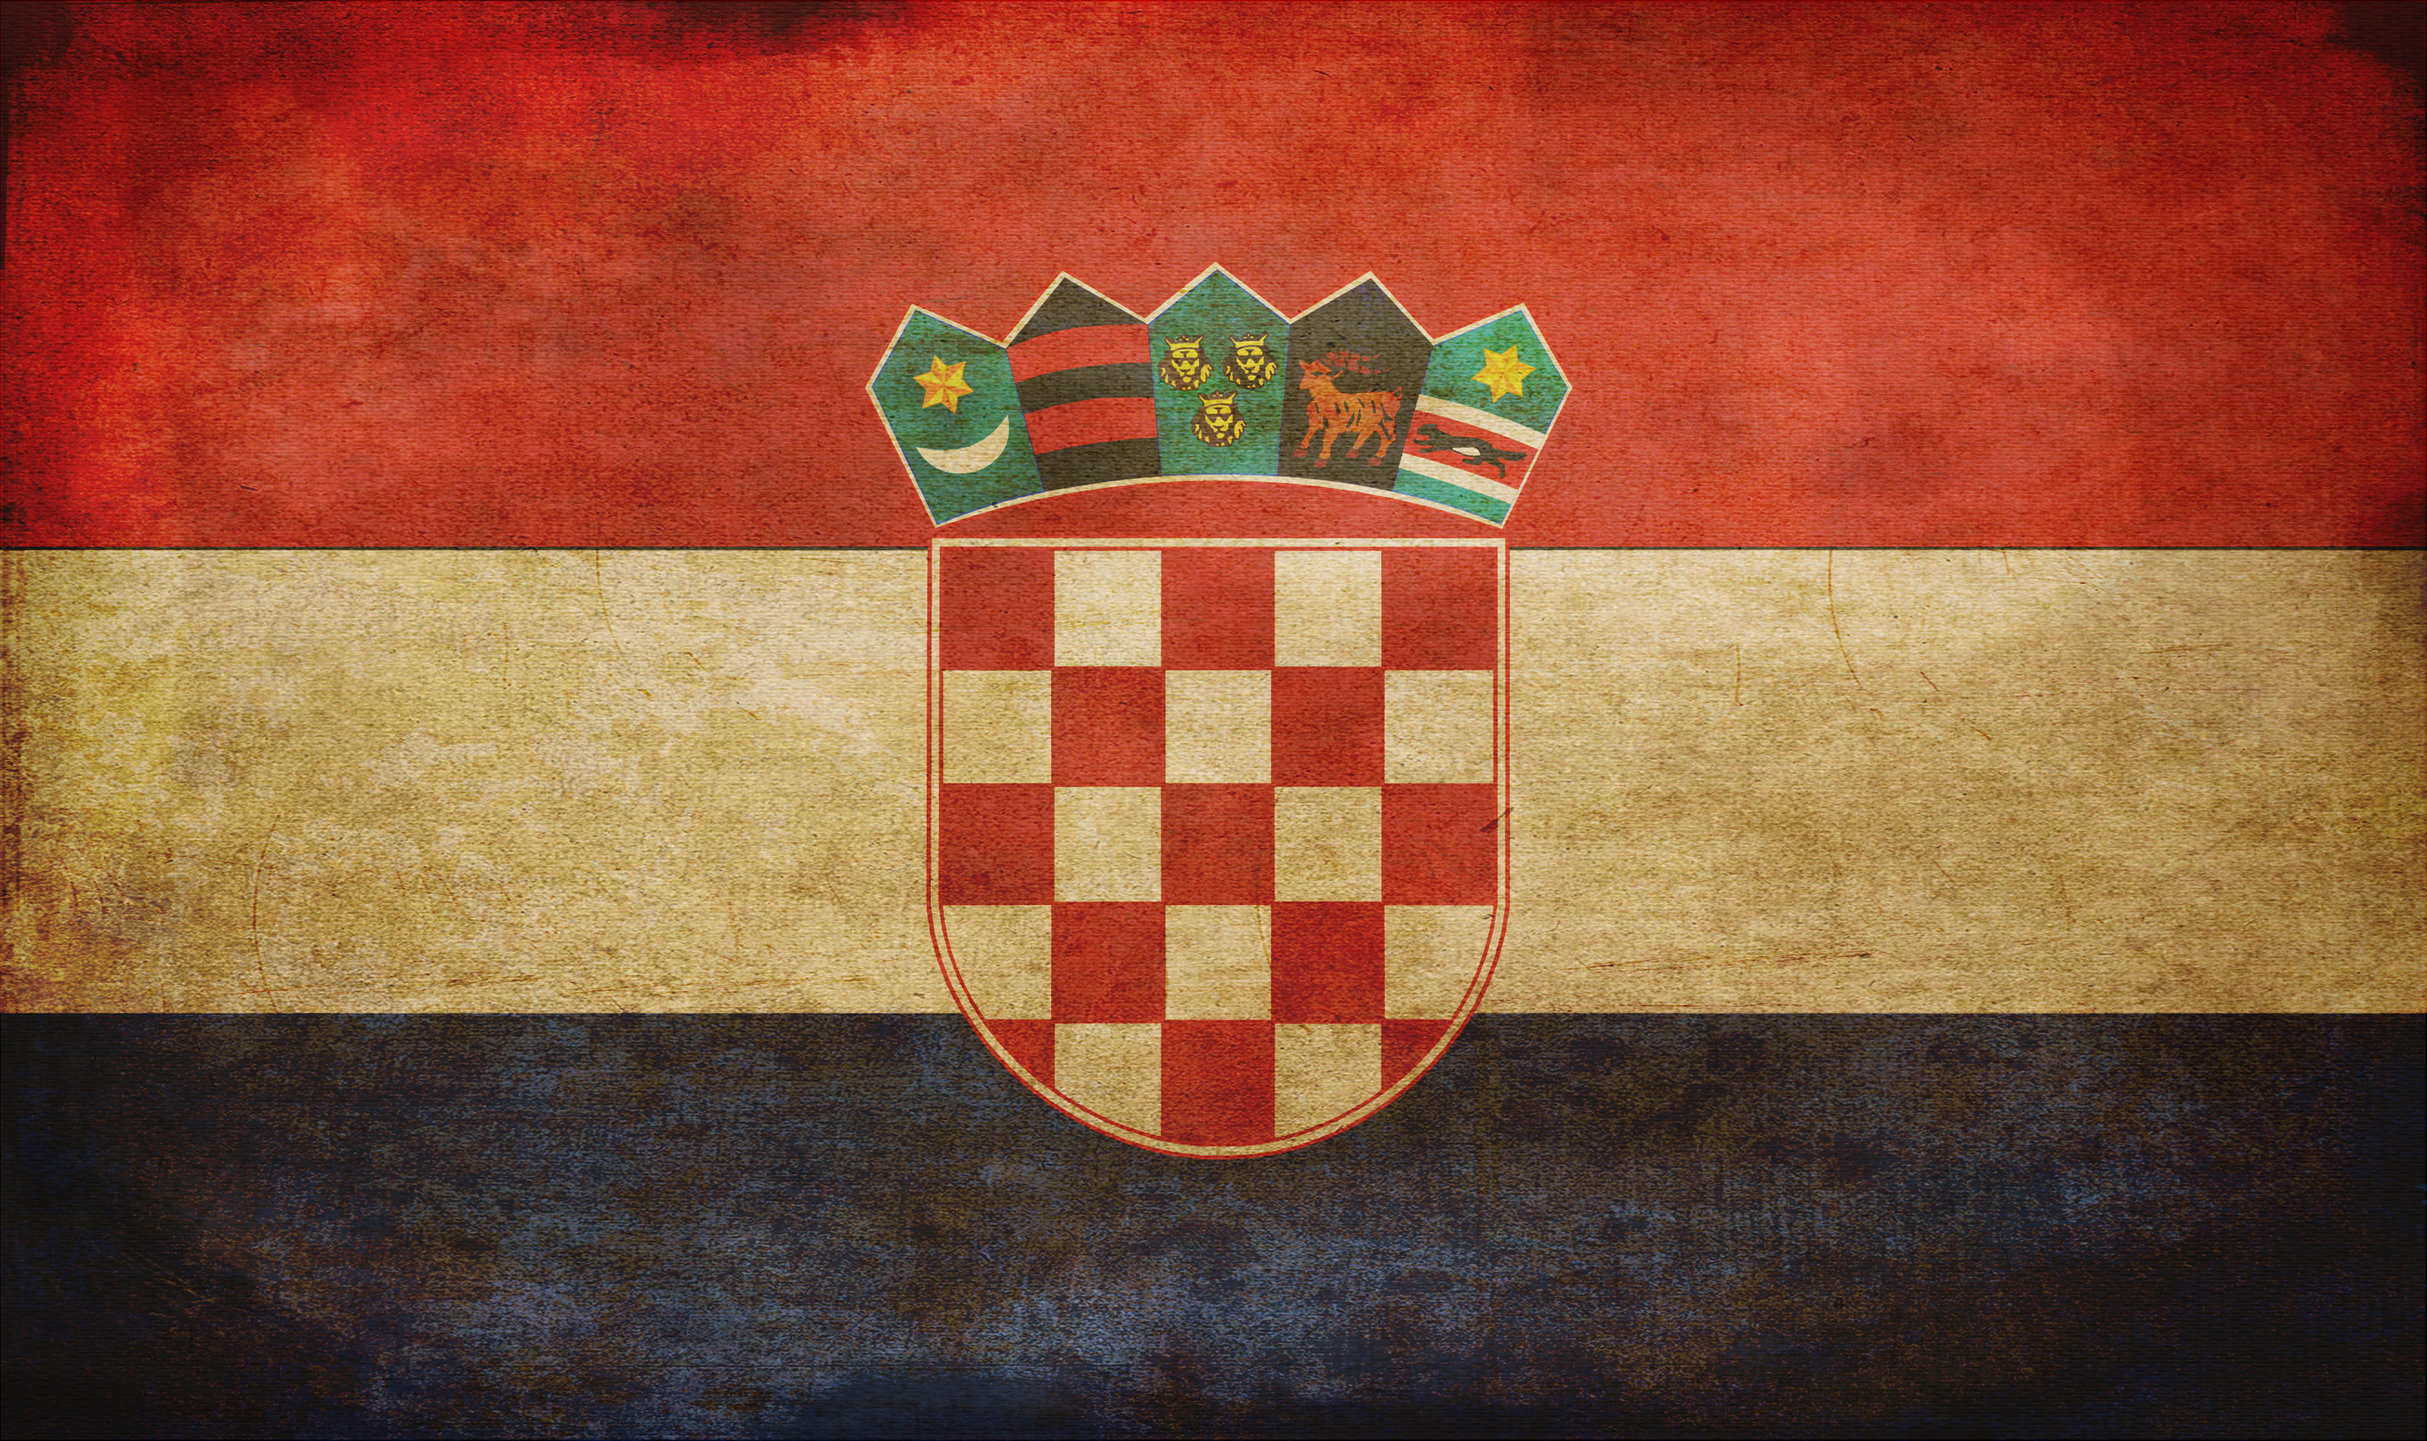 Croatia - Grunge by tonemapped on DeviantArt